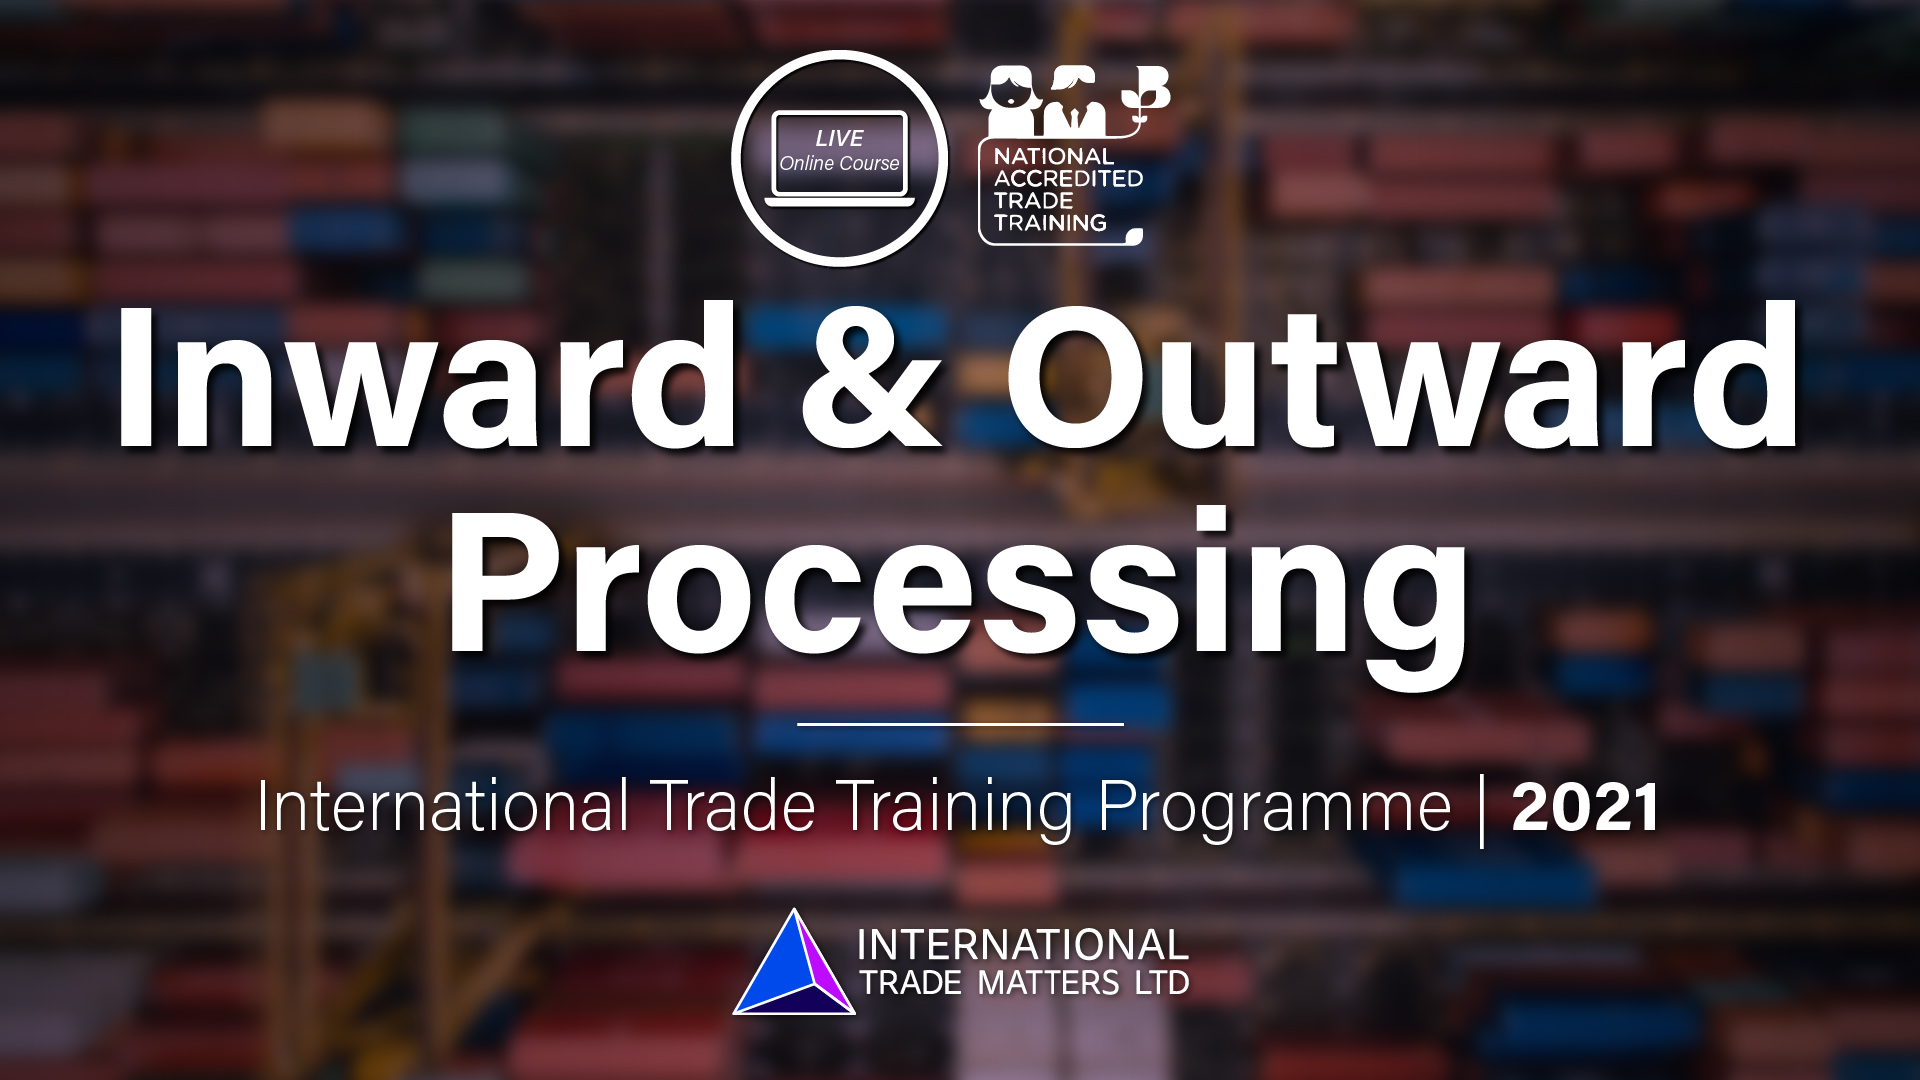 Inward & Outward Processing – An Online Course